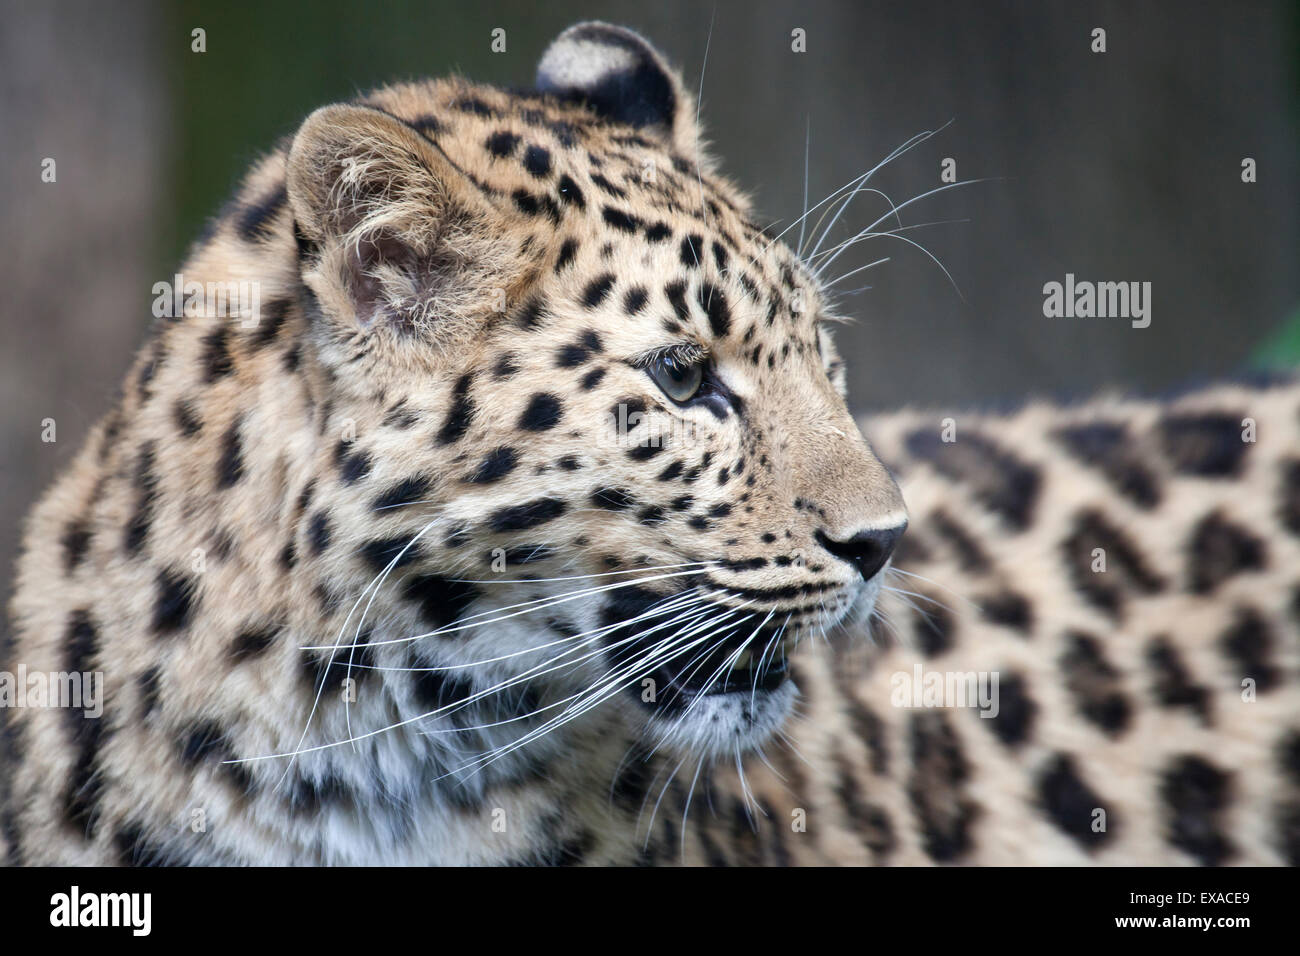 A side profile of an Amur Leopard - Stock Image